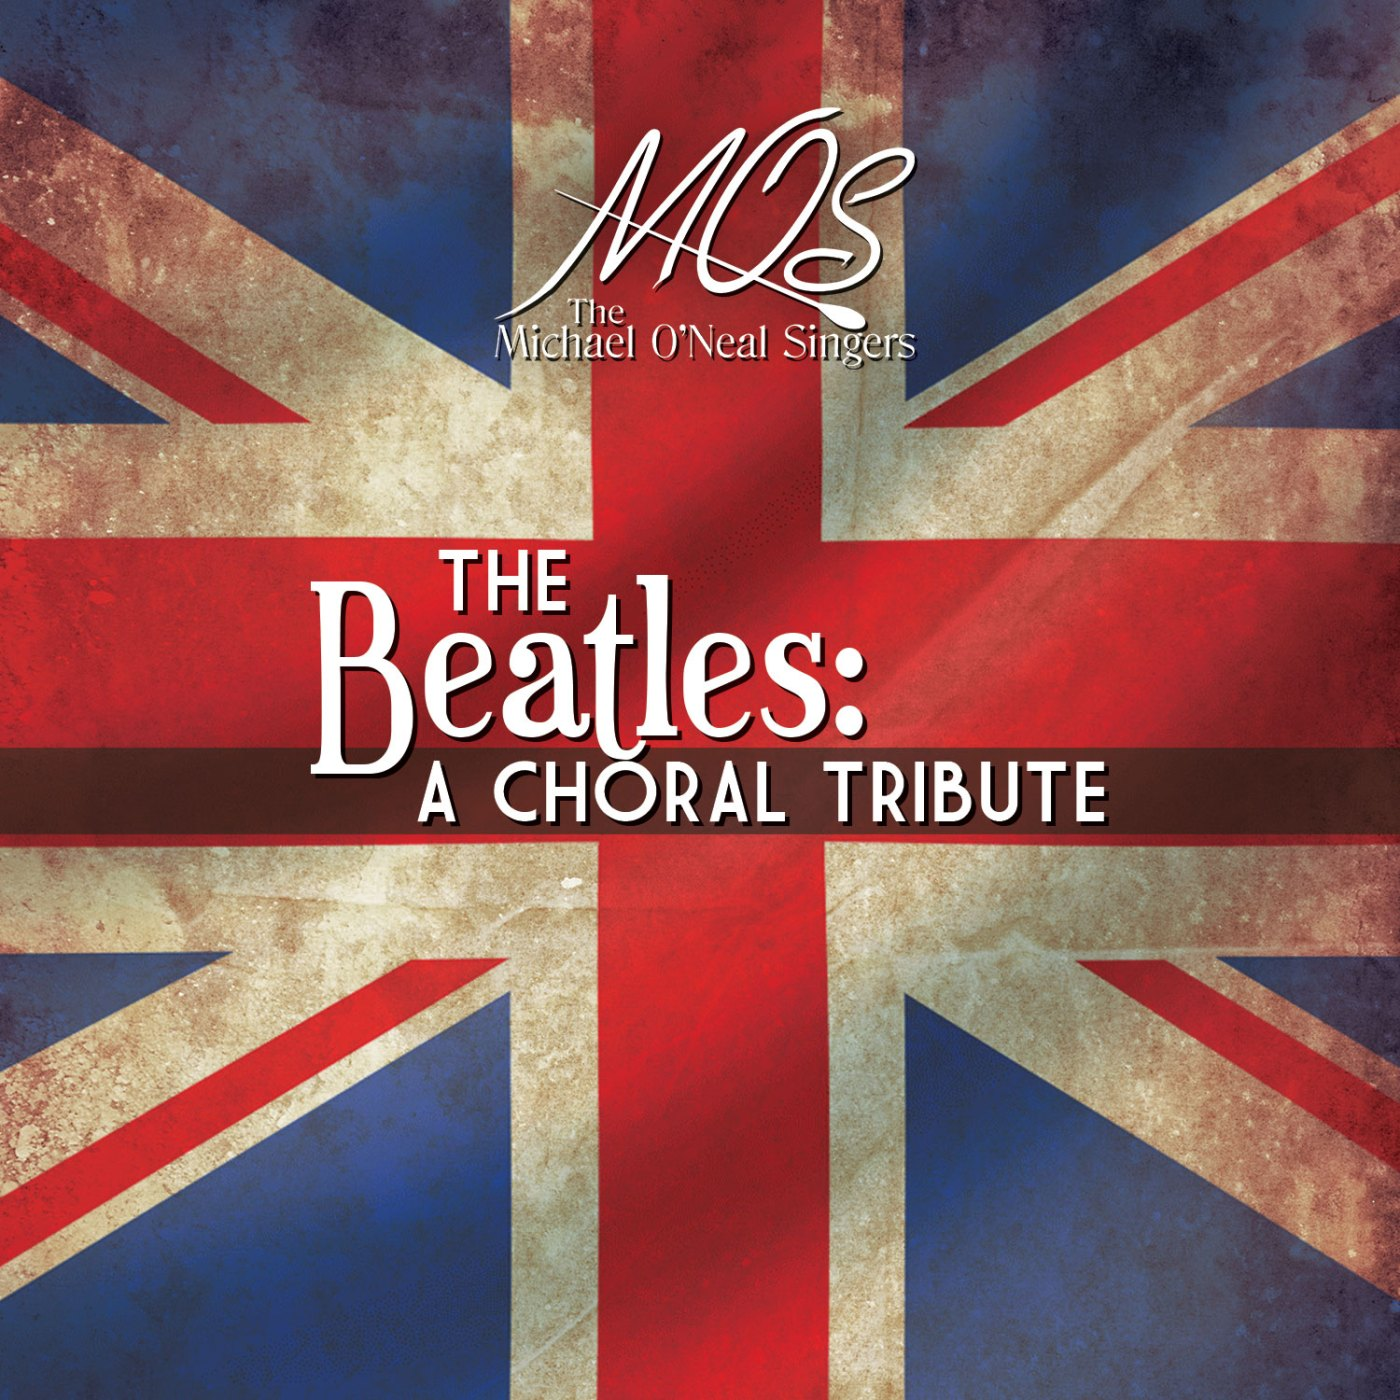 The Beatles: A Choral Tribute